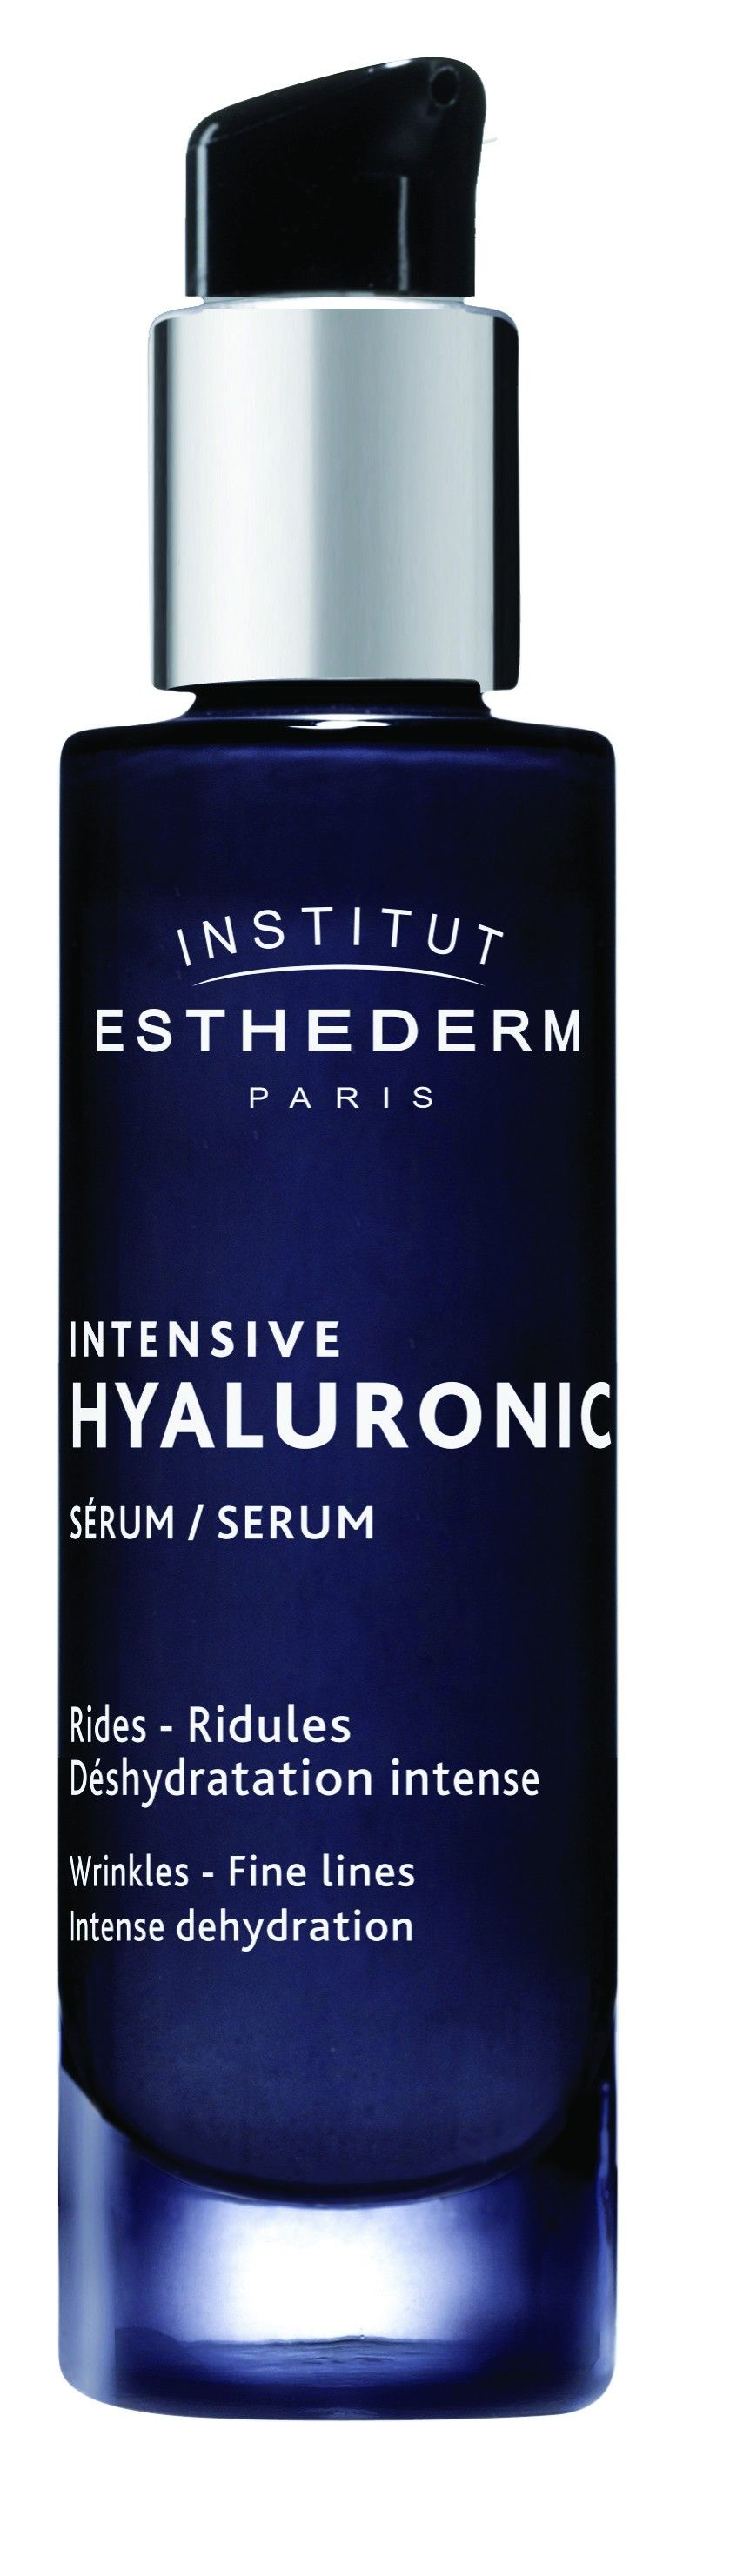 Intensive Hyaluronic Sérum Institute Esthederm